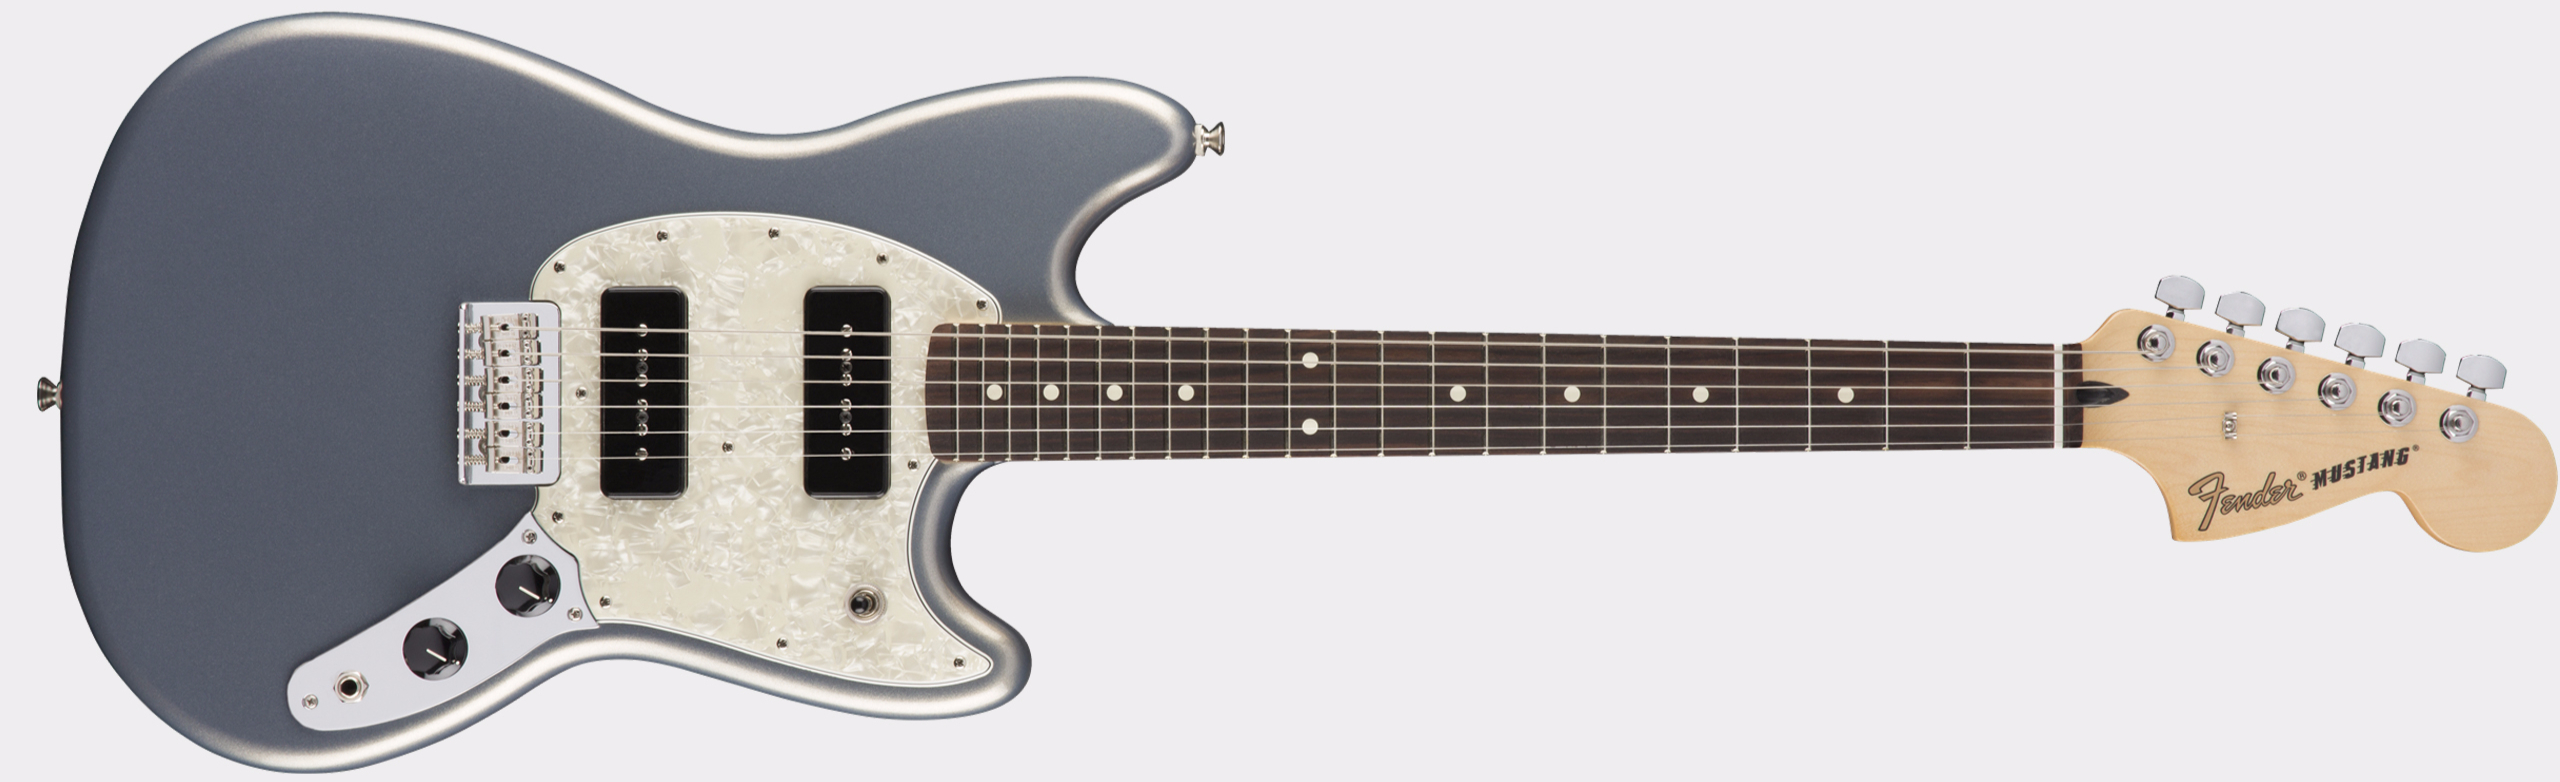 FENDER Mustang P90 RW Silver